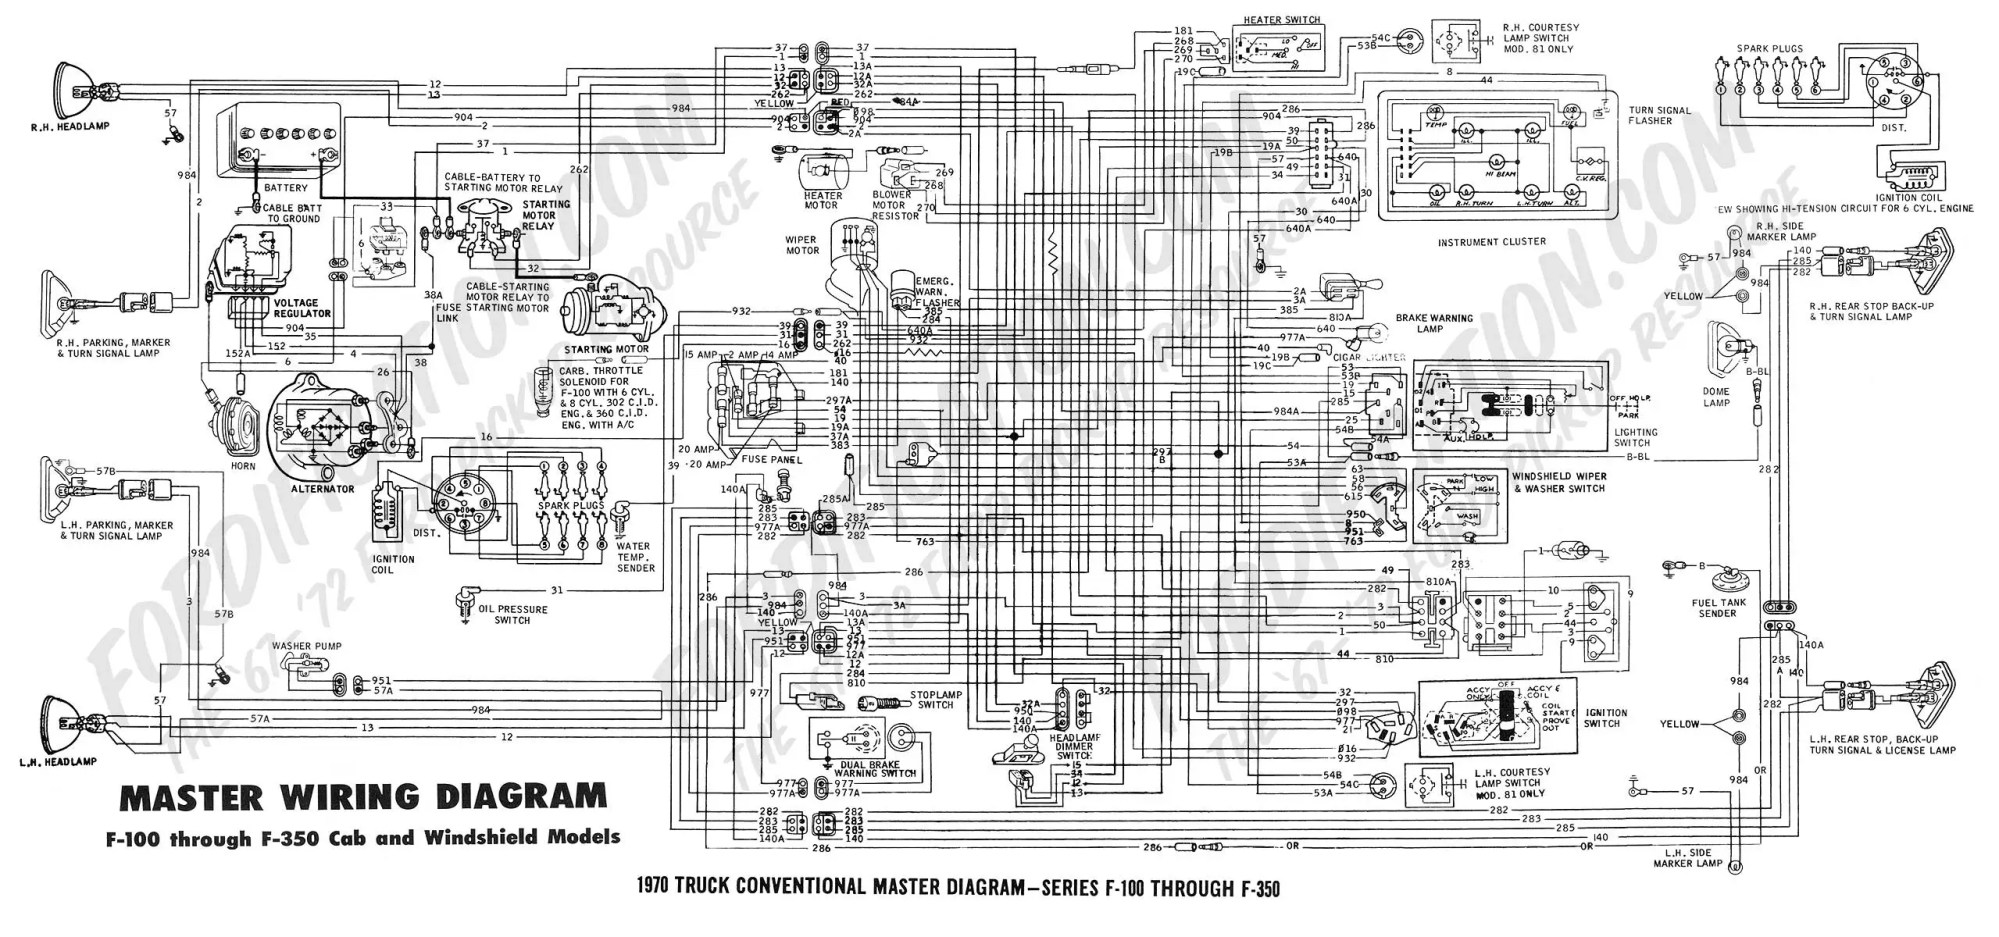 hight resolution of 06 f250 wiring diagram wiring diagram expert 2006 ford f250 wiring diagram 2006 f250 wiring diagram